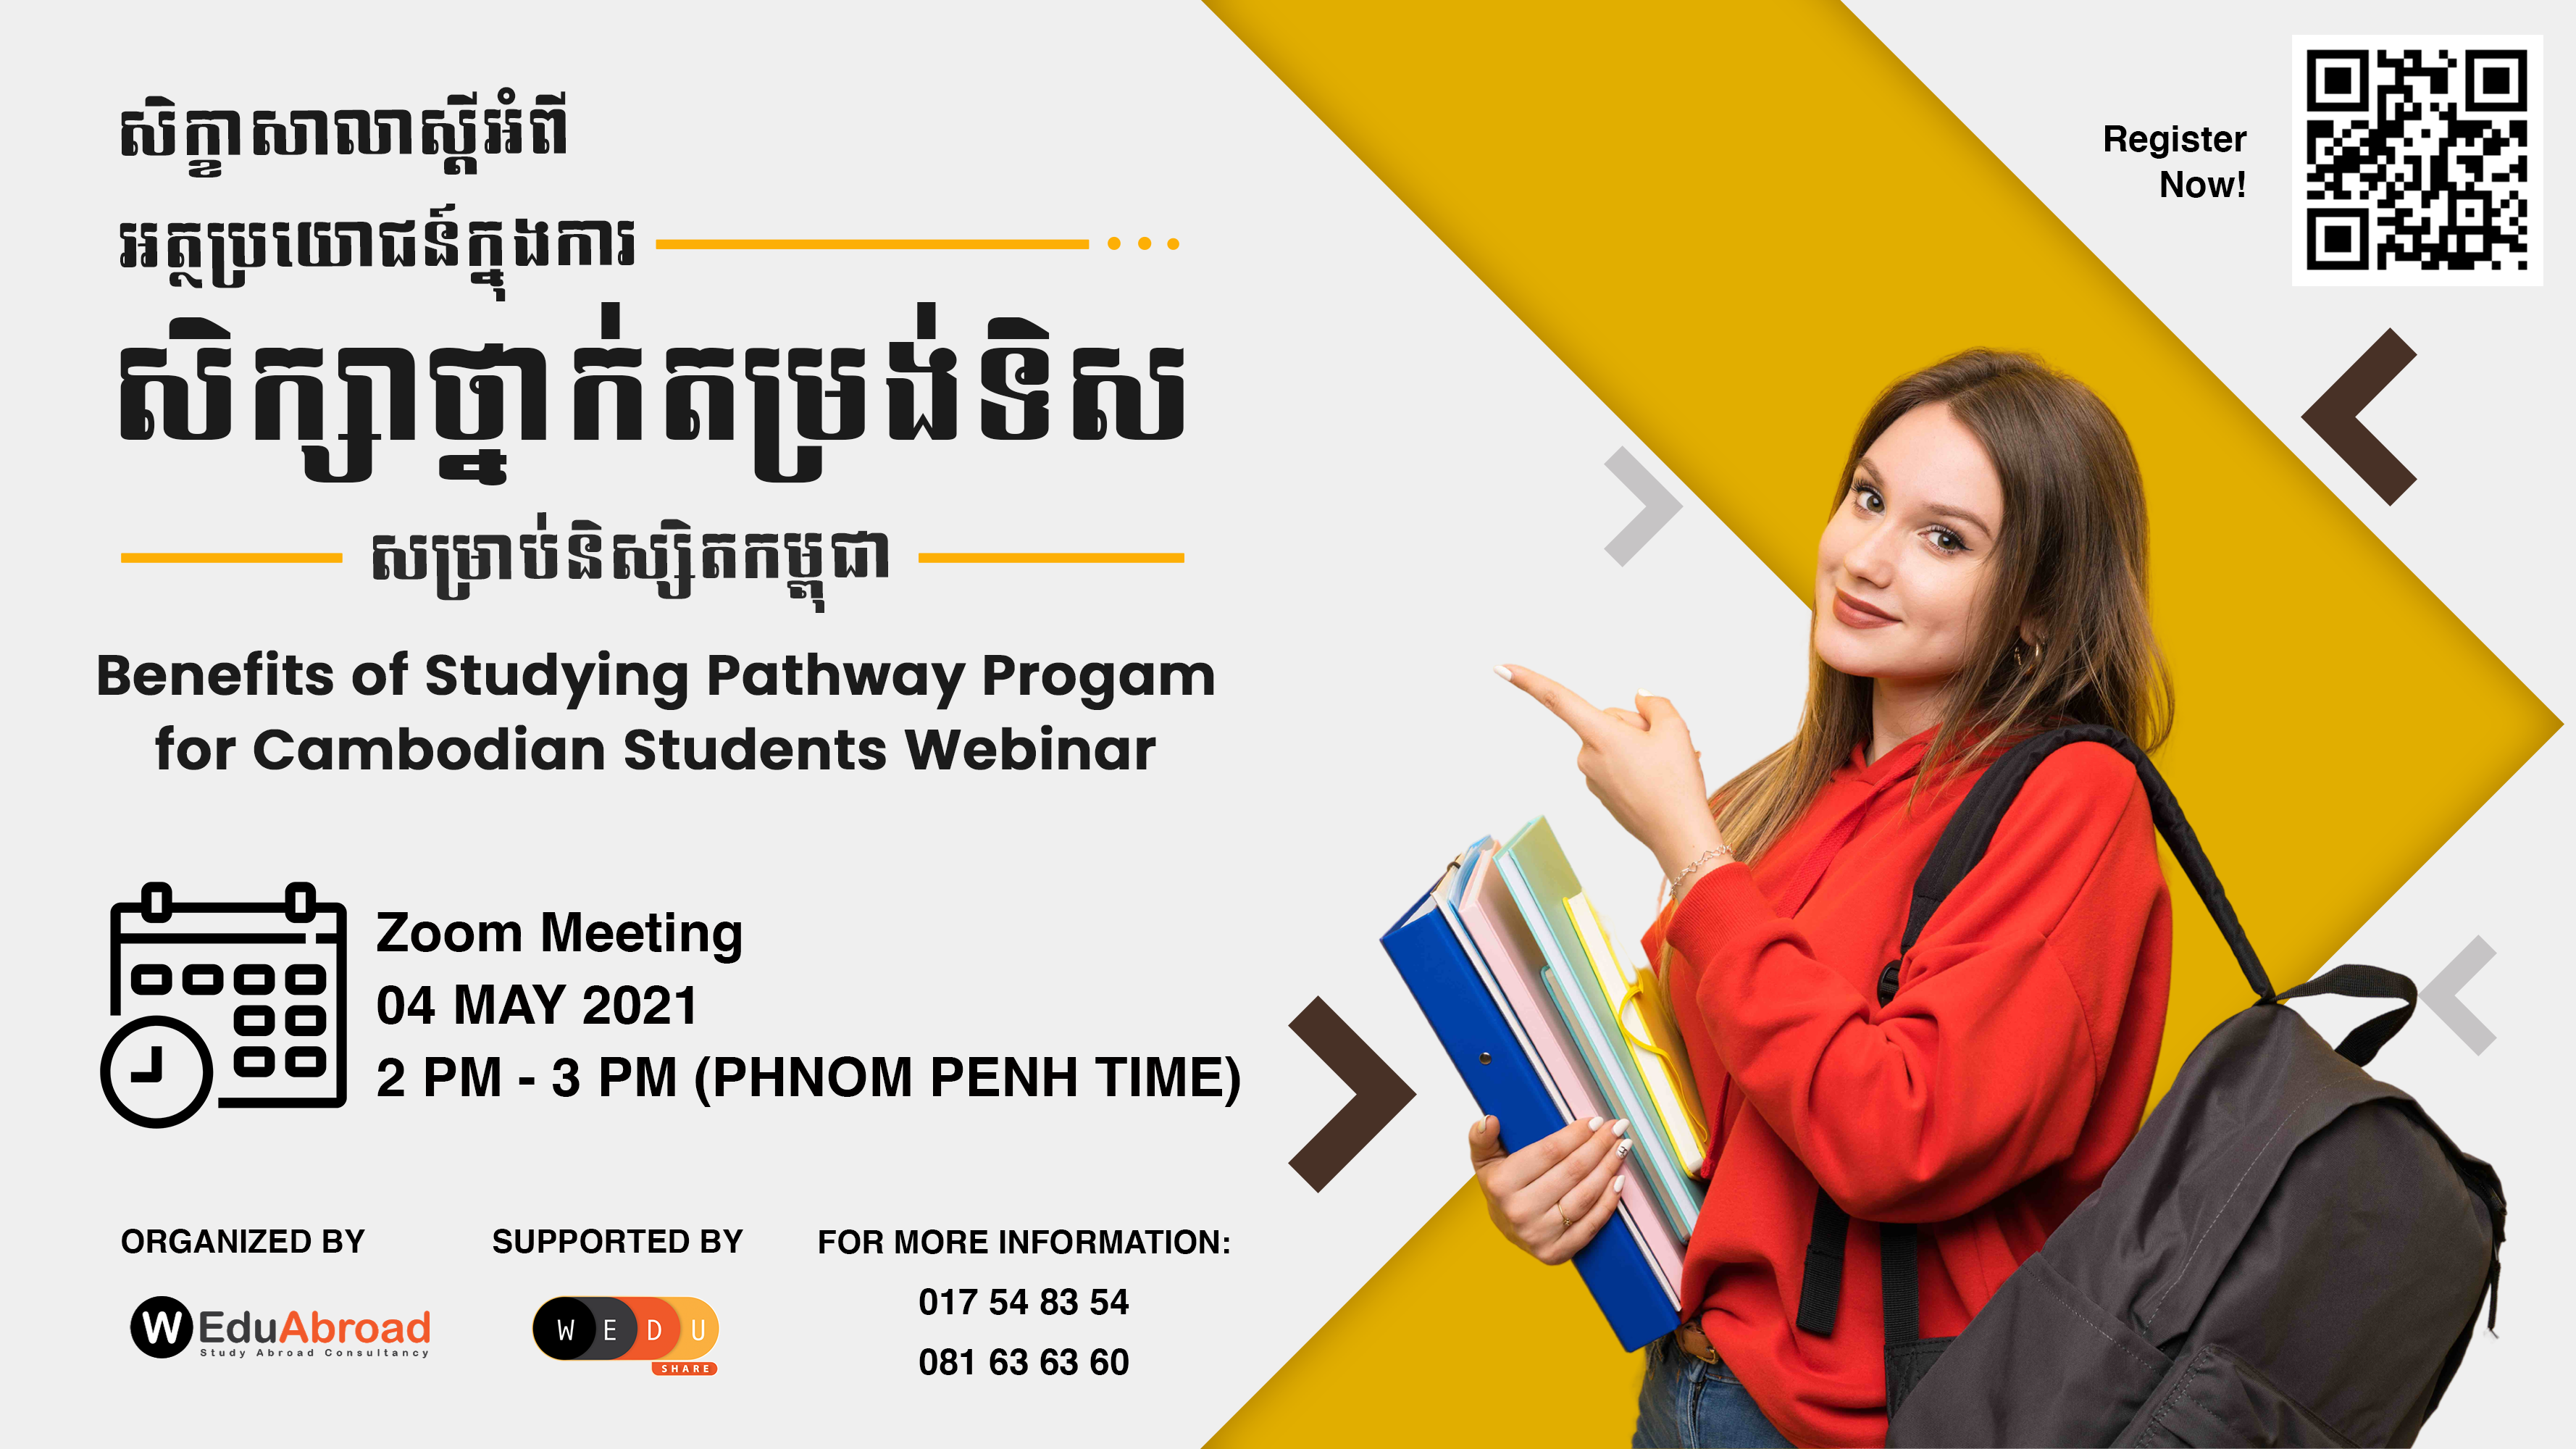 Benefits of Studying Pathway Program for Cambodian Students Webinar